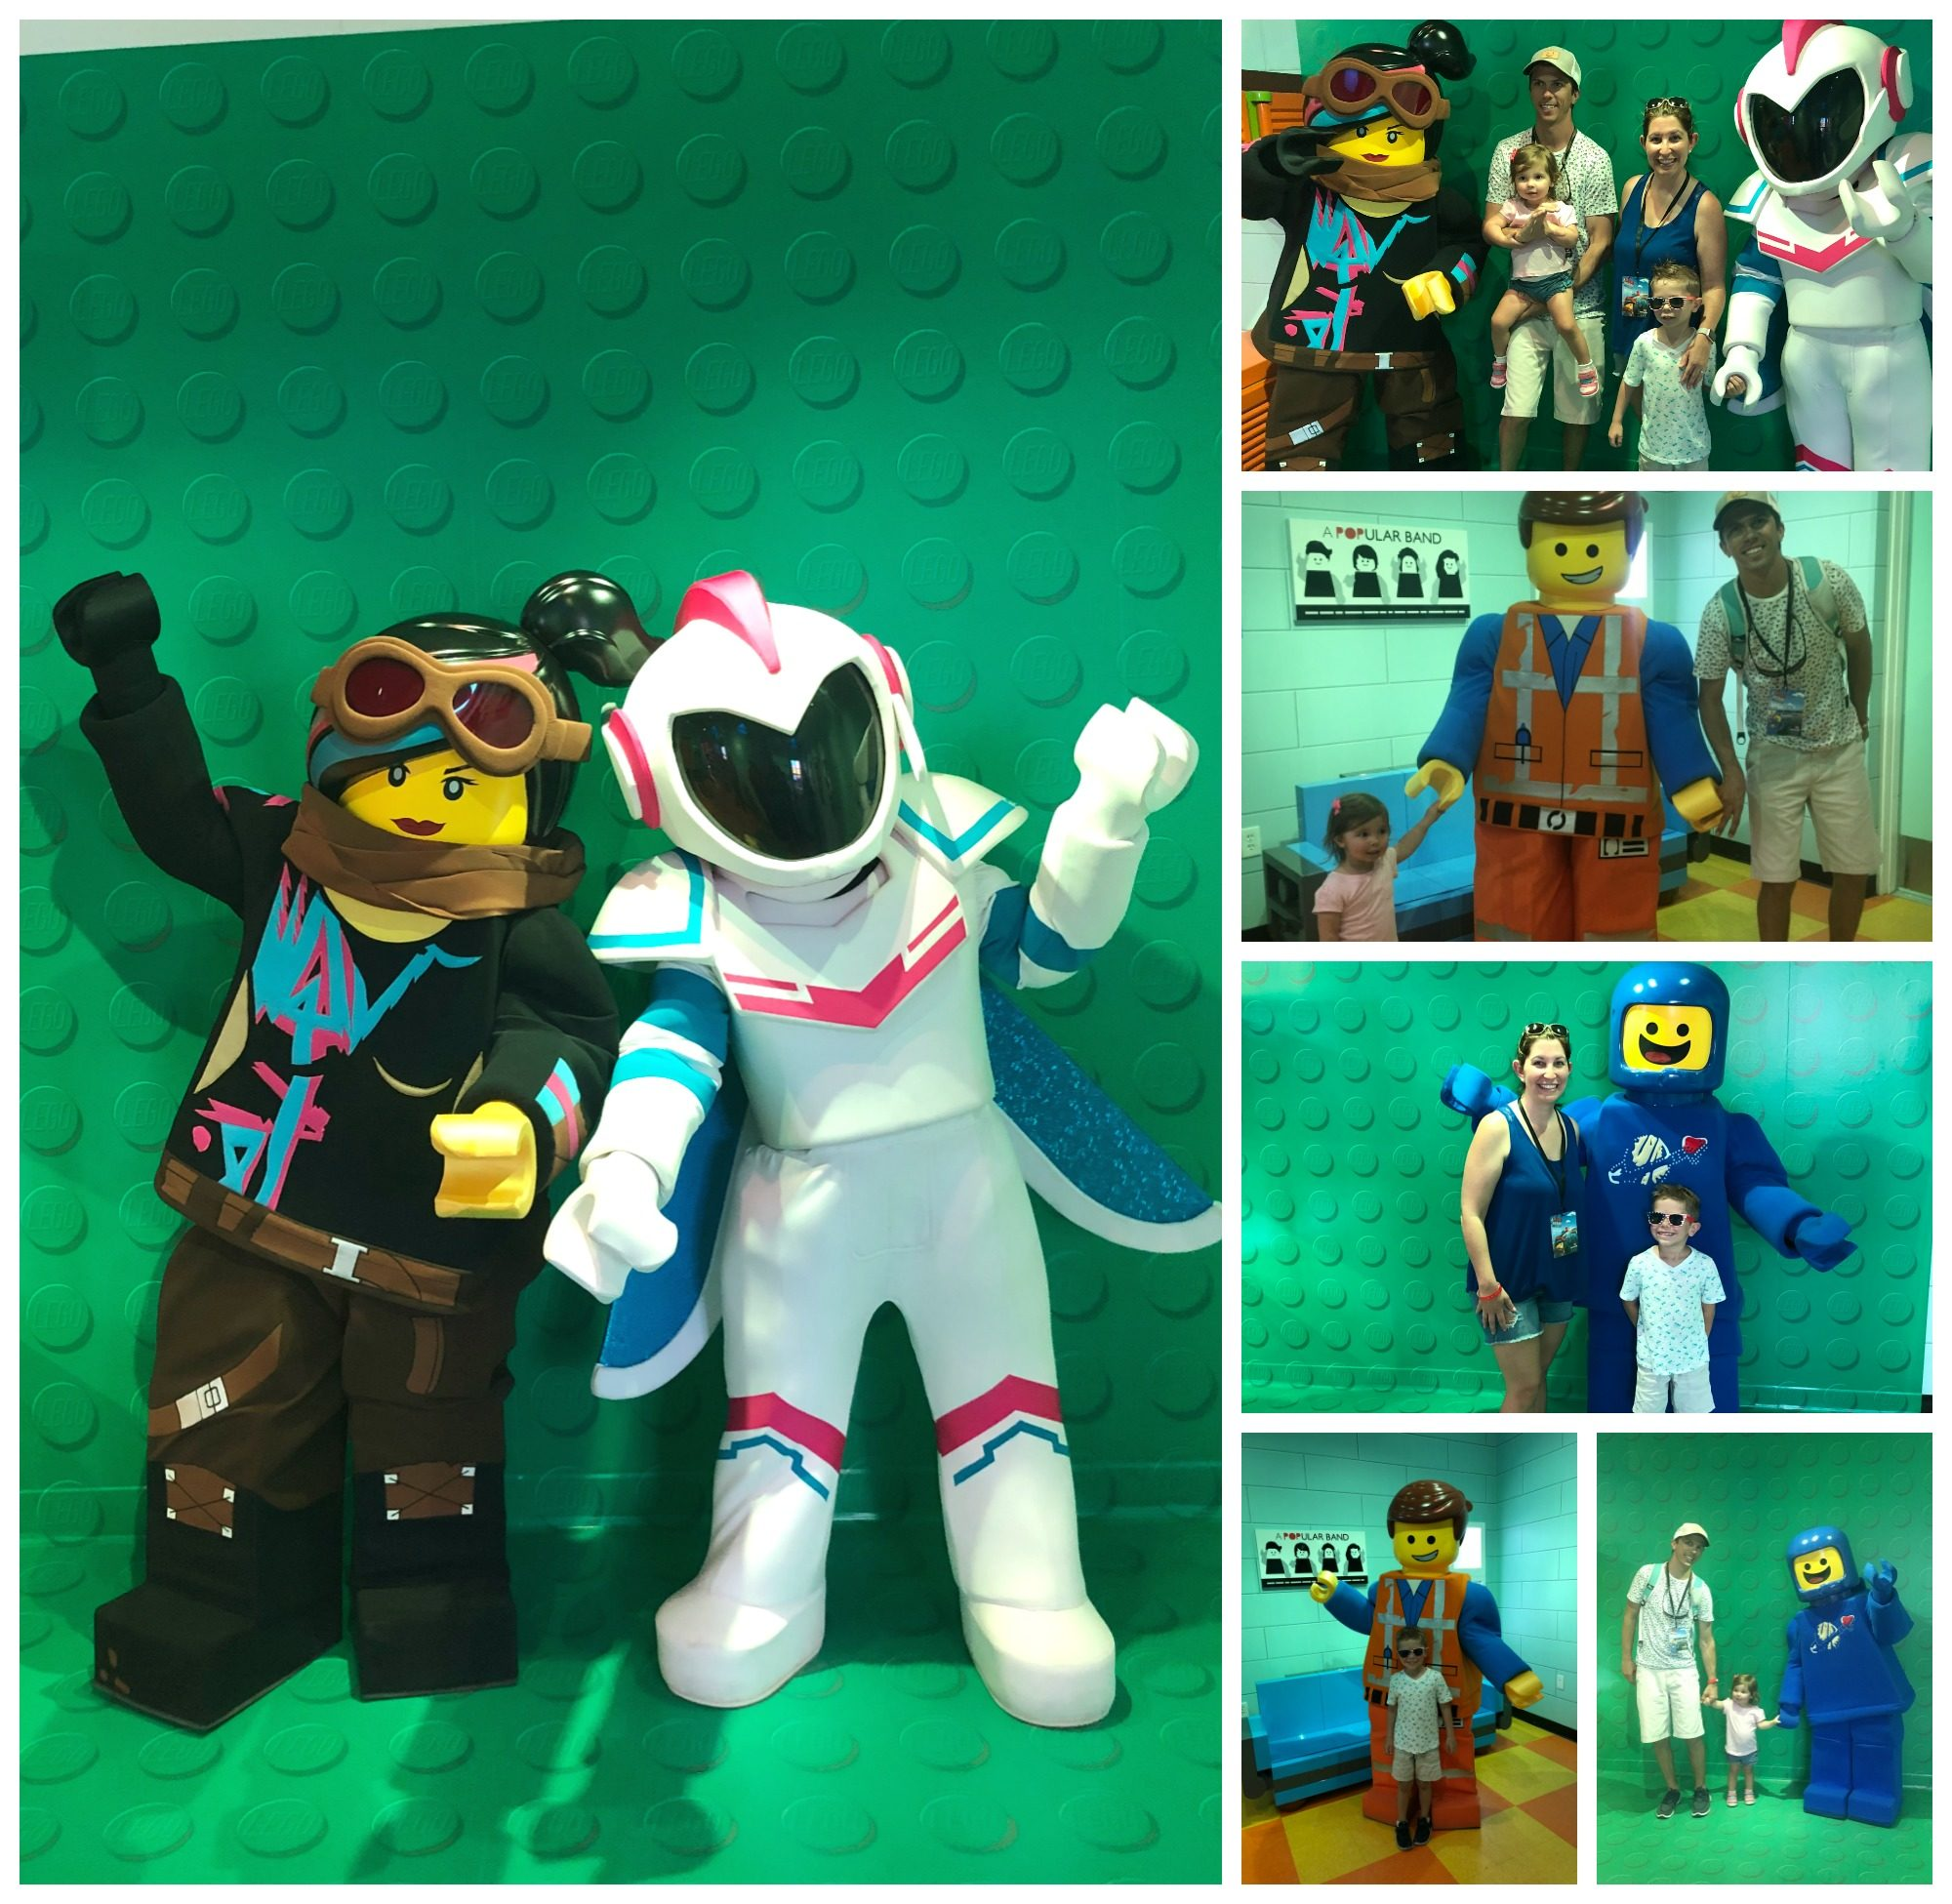 The LEGO MOVIE World LEGO Characters